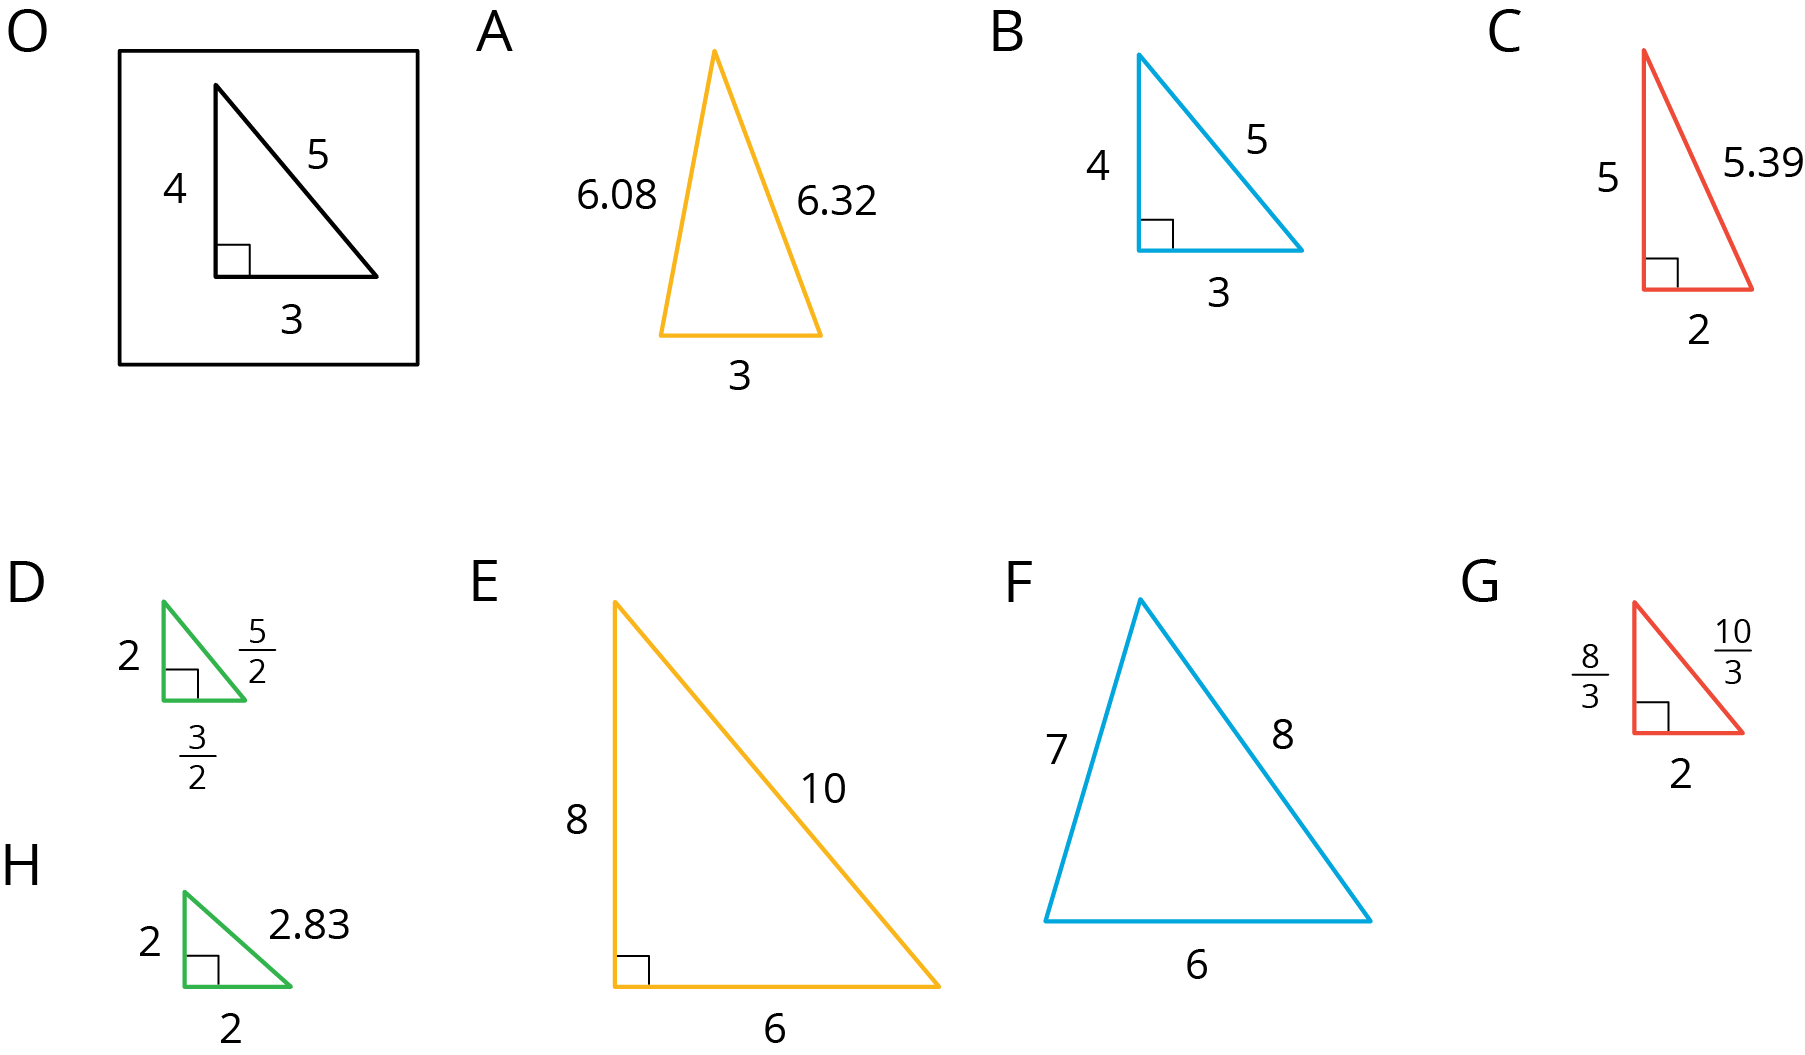 Right triangle O, has sides 3, 4, 5. Right triangle A has sides 2, 3 halves, 5 halves. B has sides 6.08 and 6.32. C has sides 6, 7, 8. Right triangle D has sides 2, 5, and 5.39. Right triangle E has sides 2, 2, and 2.38. Right triangle F has sides 6, 8, and 10. Right triangle G has sides 3, 4, and 5. Right triangle H has sides 2, 8 thirds, and 10 thirds.